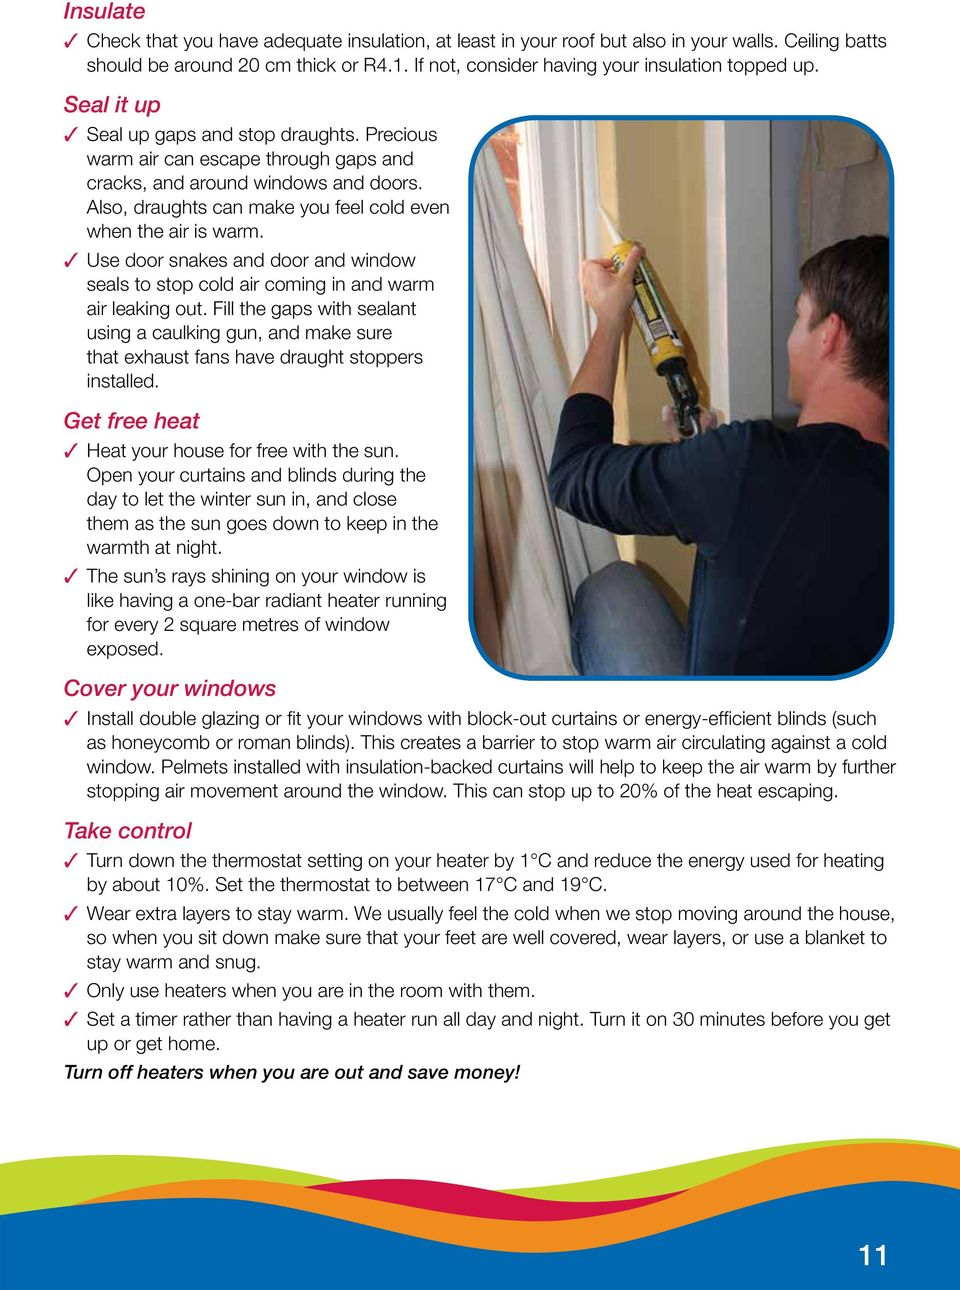 Use door snakes and door and window seals to stop cold air coming in and warm air leaking out.